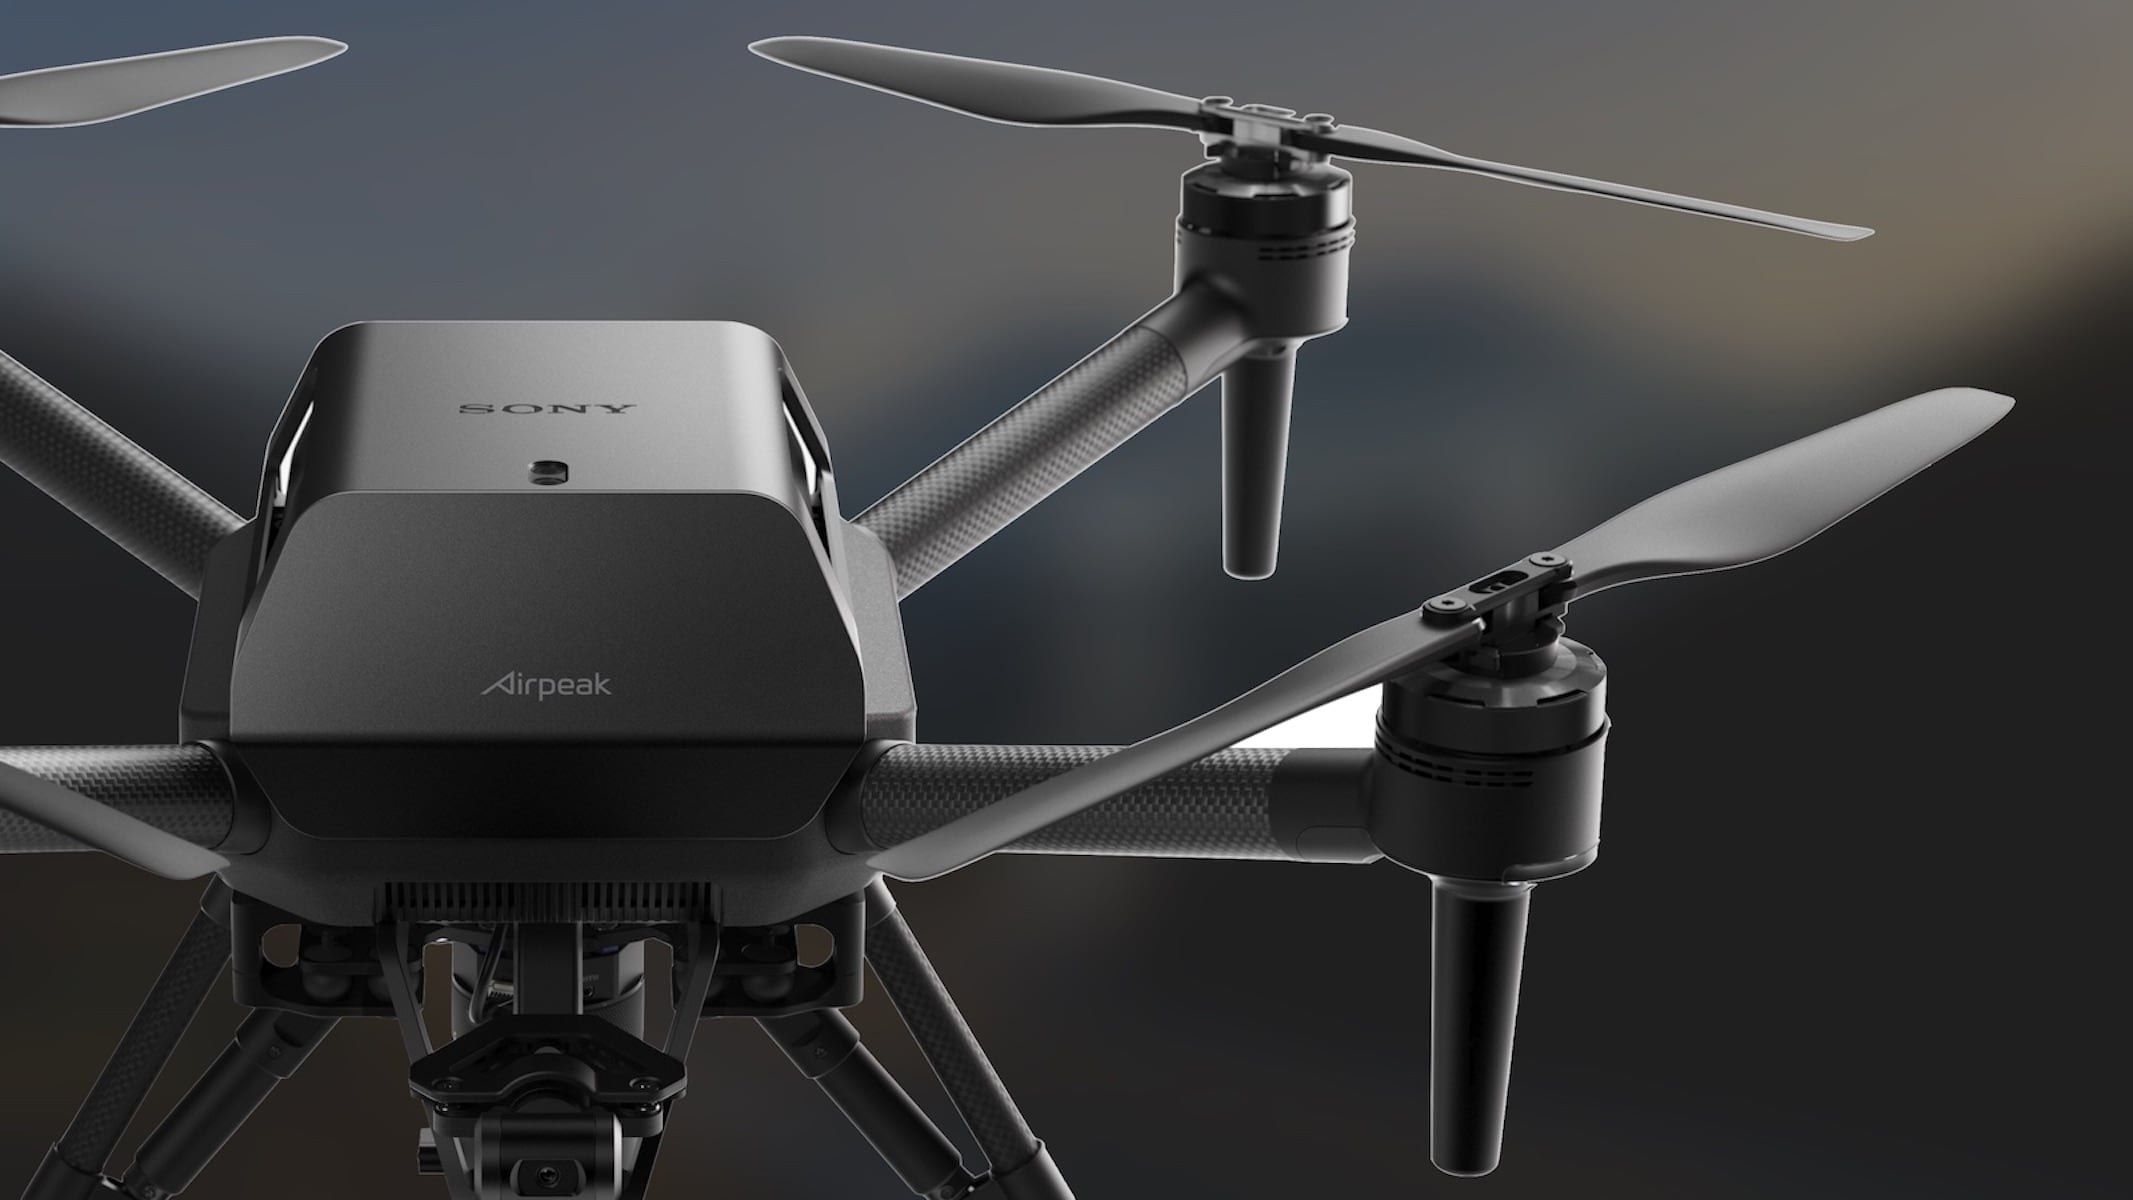 Sony's Airpeak Drone design